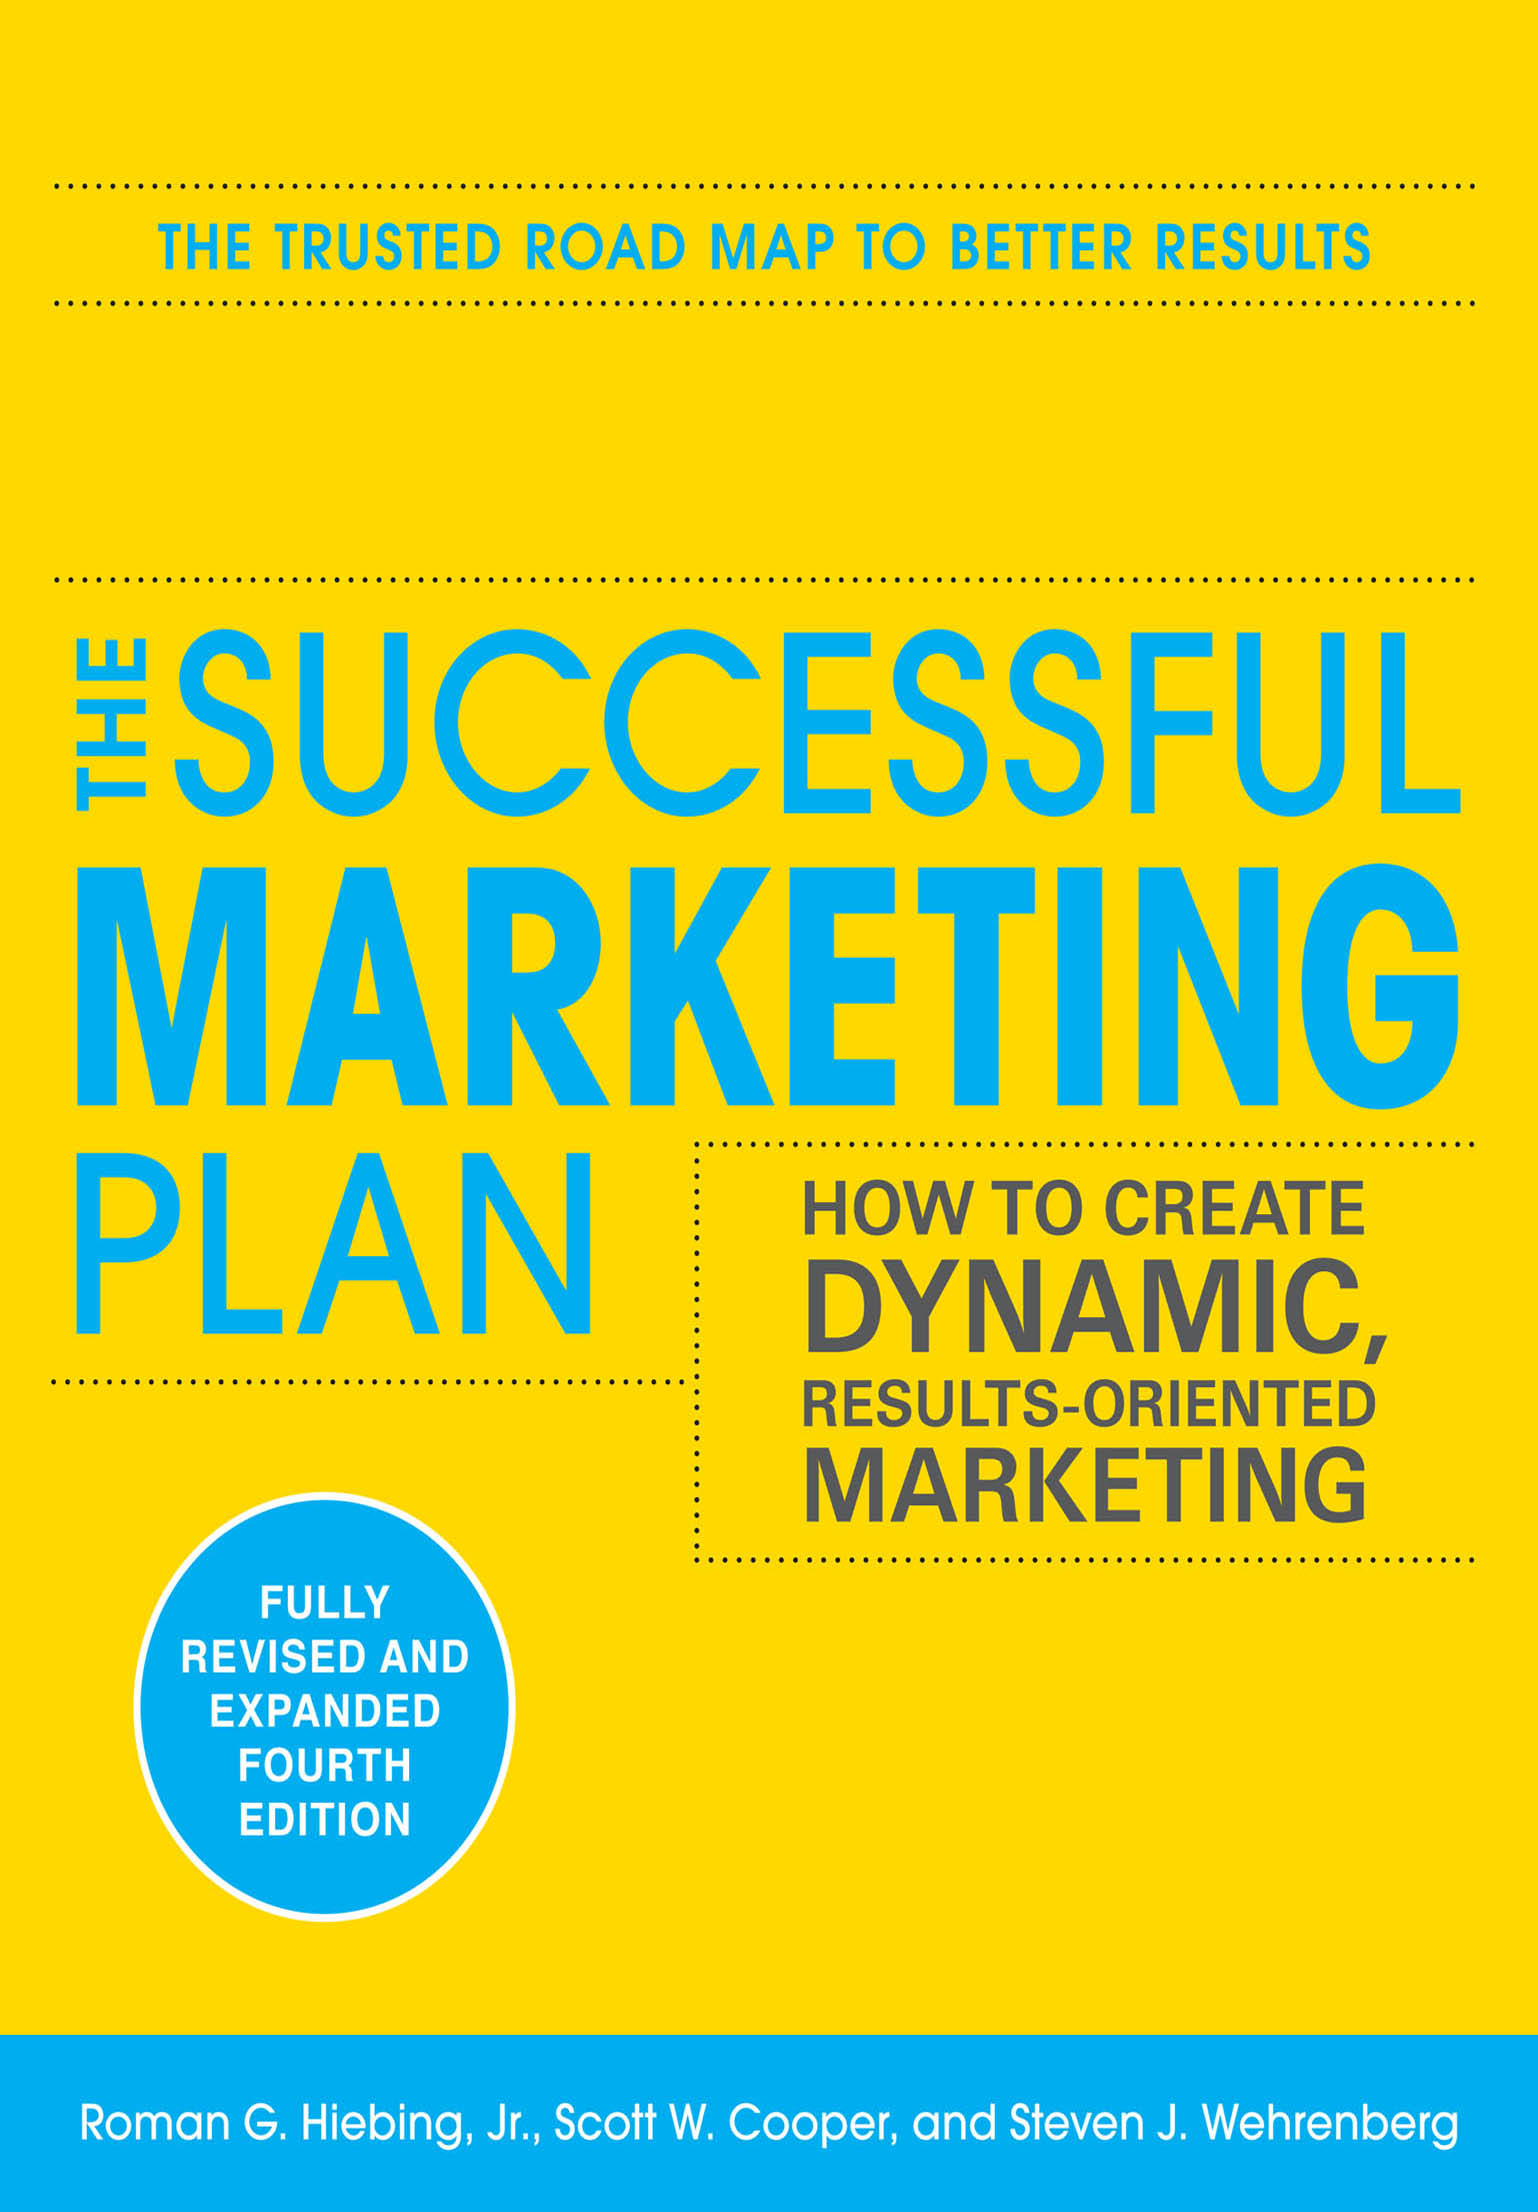 The Successful Marketing Plan: How to Create Dynamic, Results Oriented Marketing, 4th Edition By:  Scott Cooper, Steve Wehrenberg,Roman Hiebing